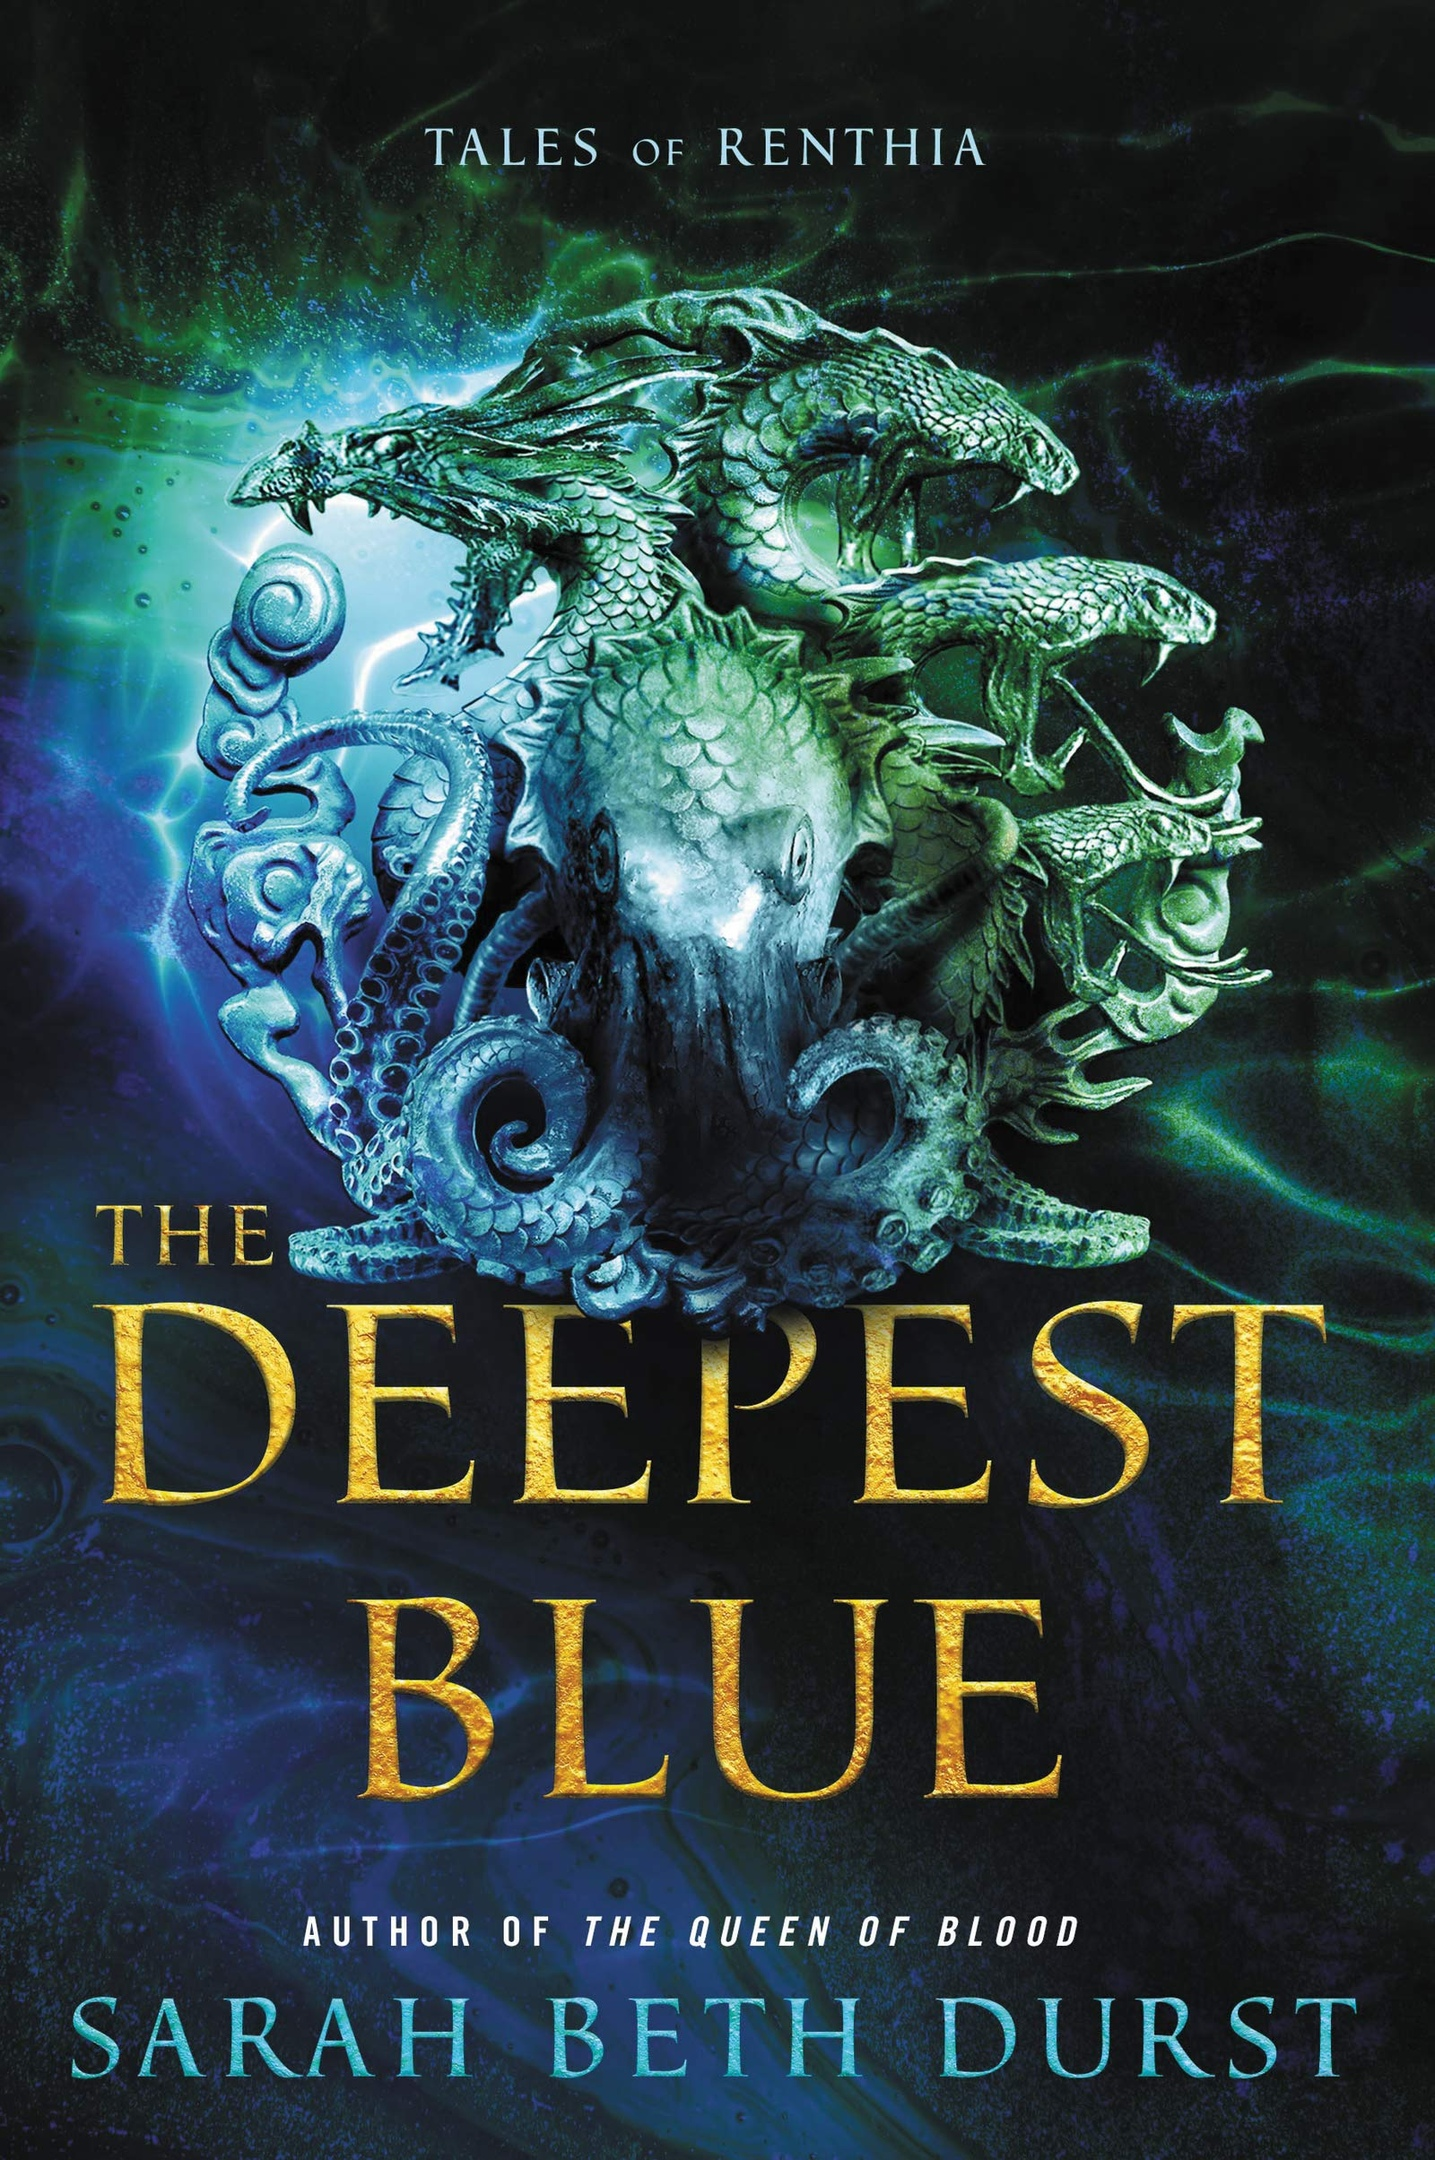 Sarah Beth Durst – The Deepest Blue